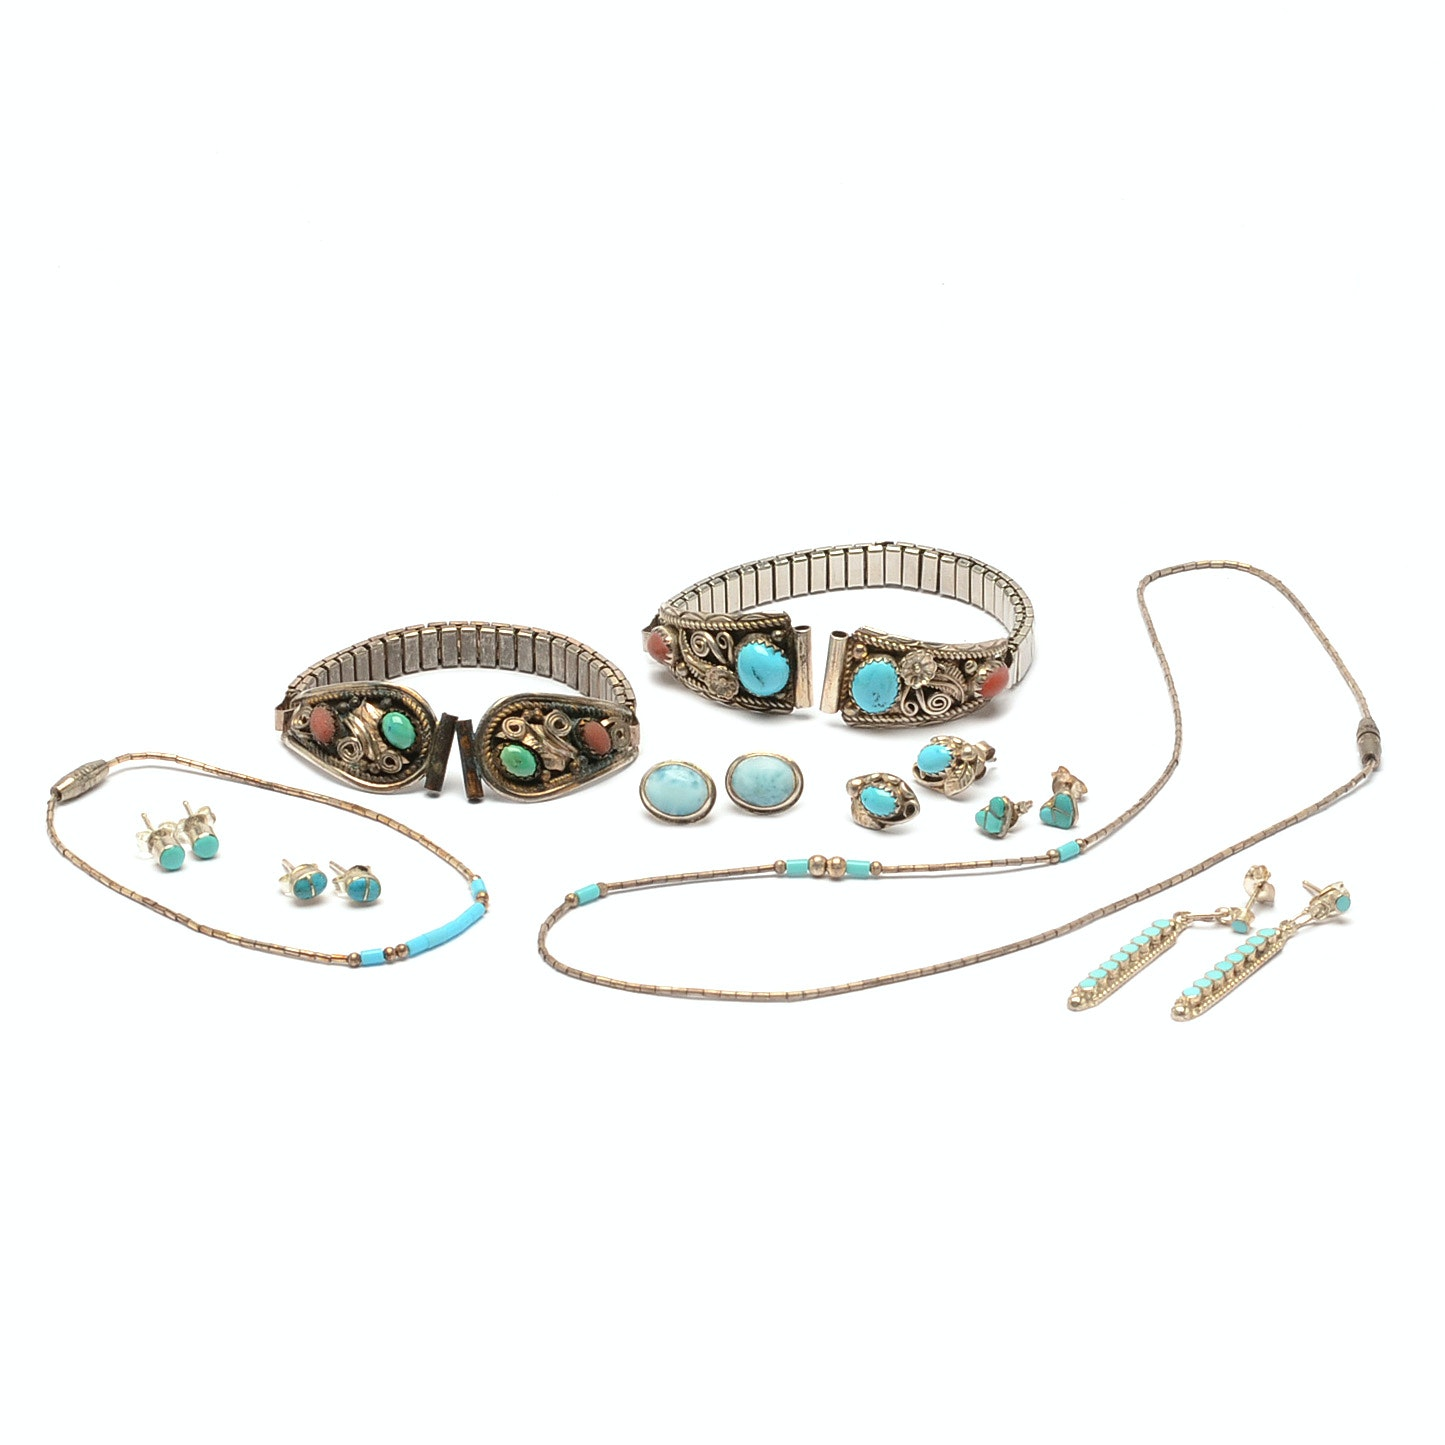 Sterling Silver Jewelry with Turquoise, Larimar and More